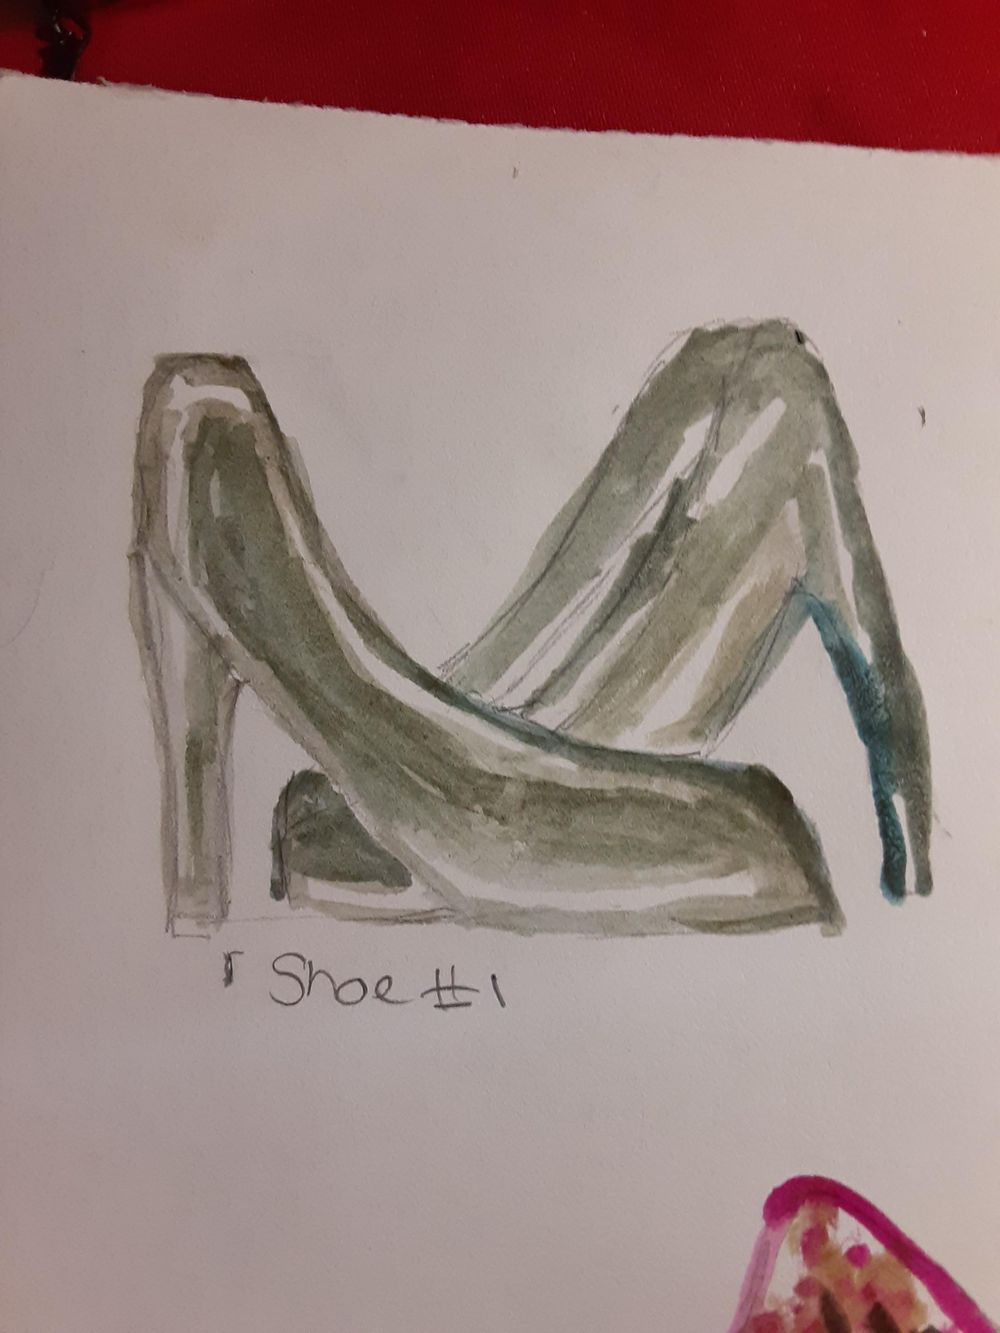 My Shoes - image 1 - student project